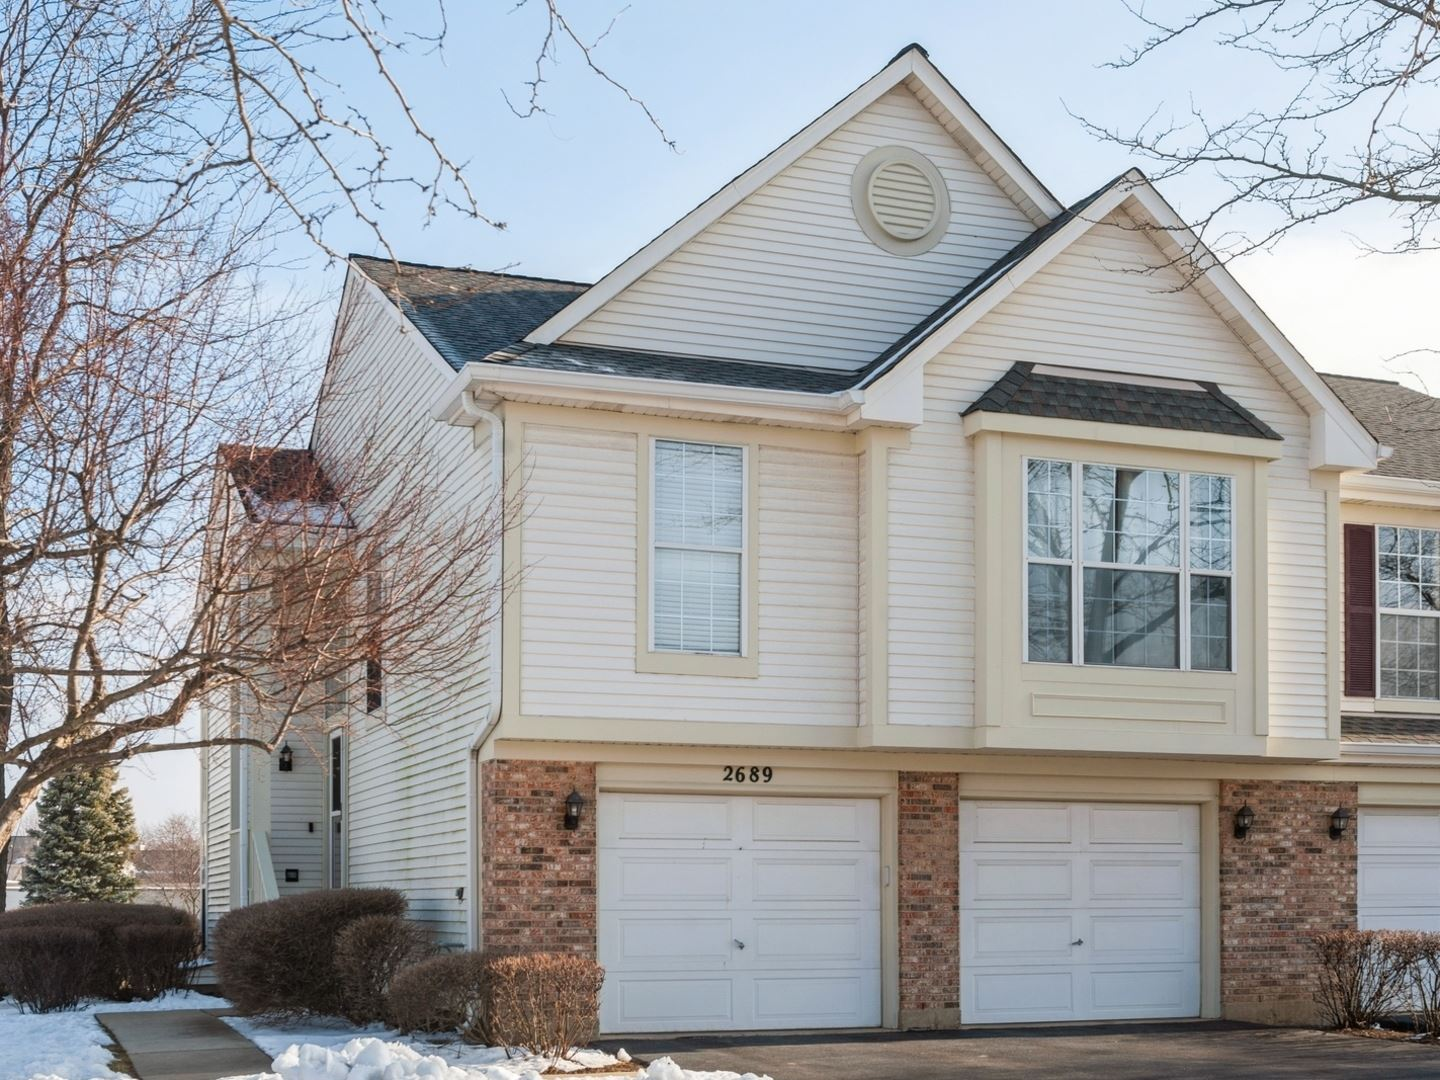 Photo for 2689 S Embers Lane, Arlington Heights, IL 60005 (MLS # 10970516)